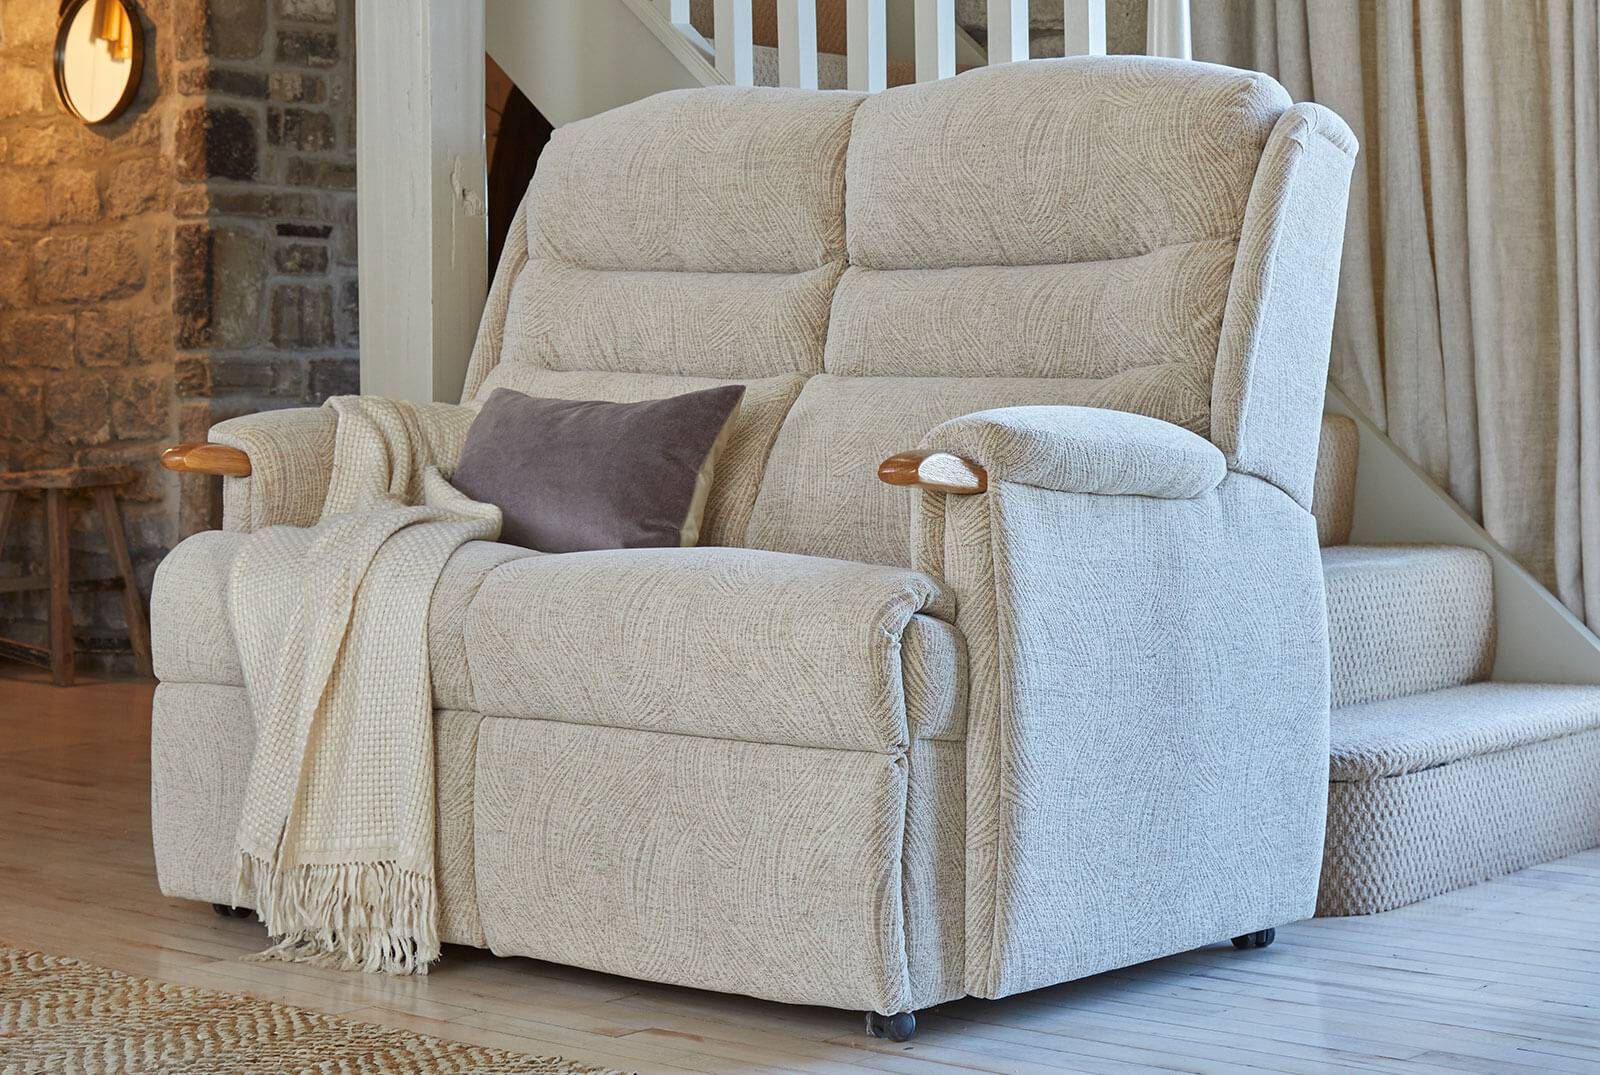 Ripley Two-Seater Comfort Sofa in Ivrea Sand